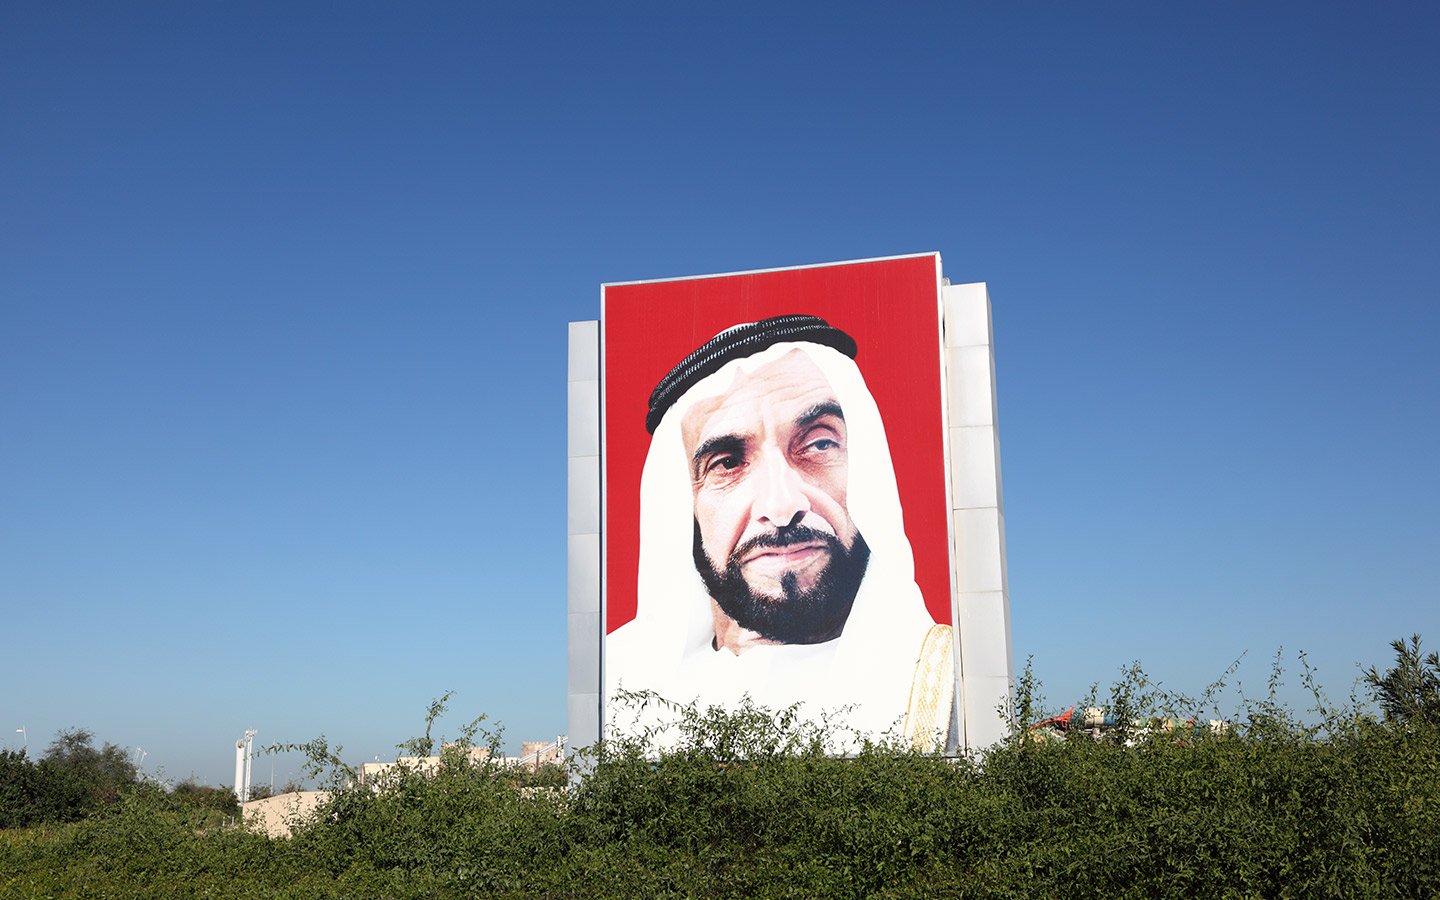 Learn about Sheikh Zayed at the Zayed Centre